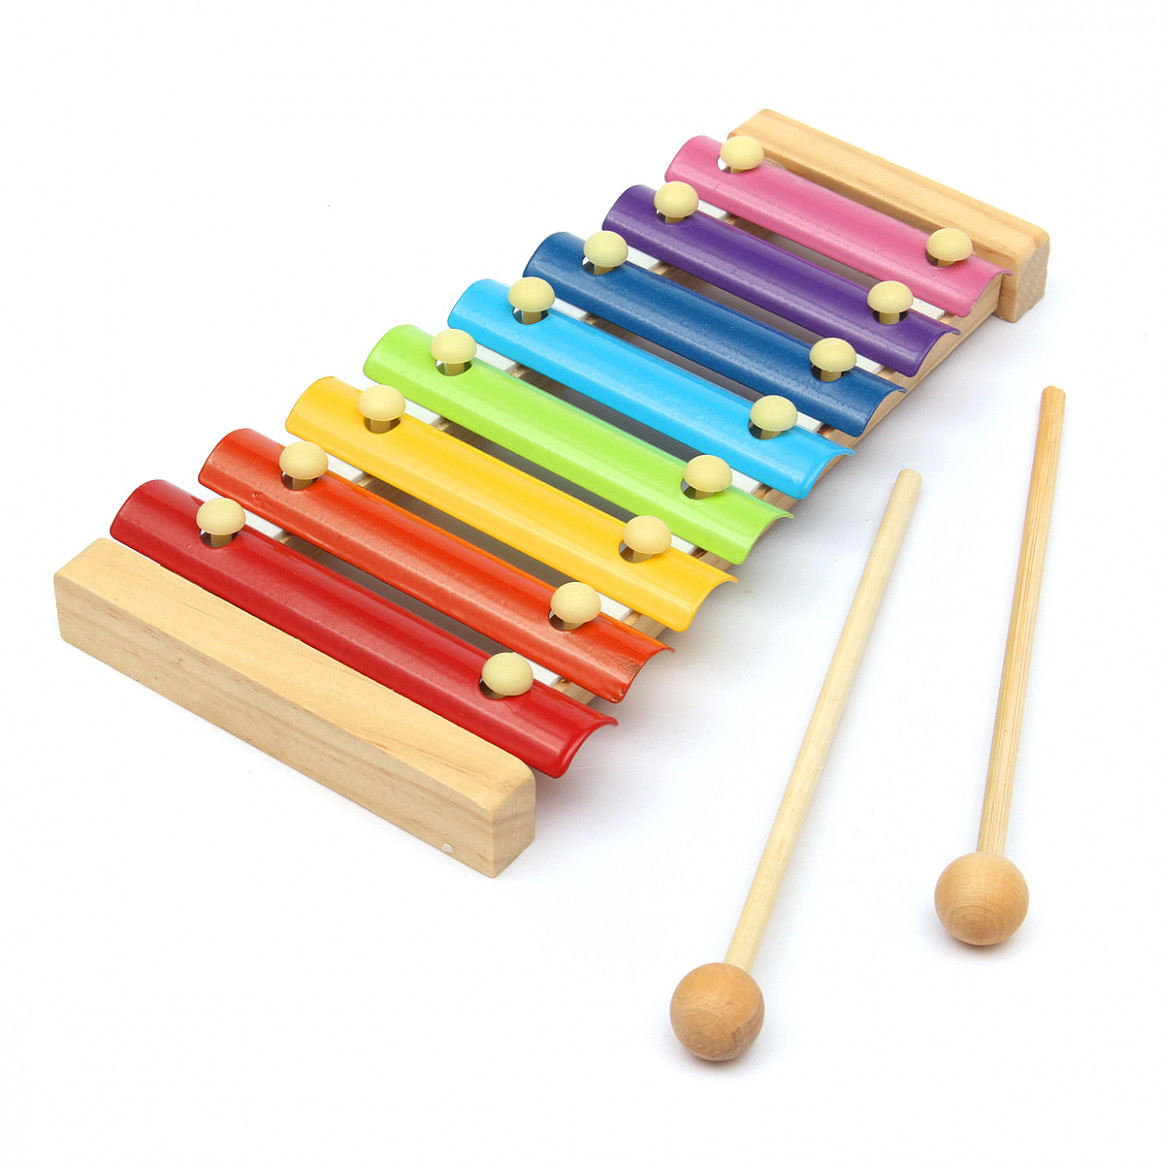 Kids Baby Natural Wooden Piano Educational Xylophone Musical Instrument Glockenspiel Toy Inspire Children's Talent Children Kids Baby Music ..